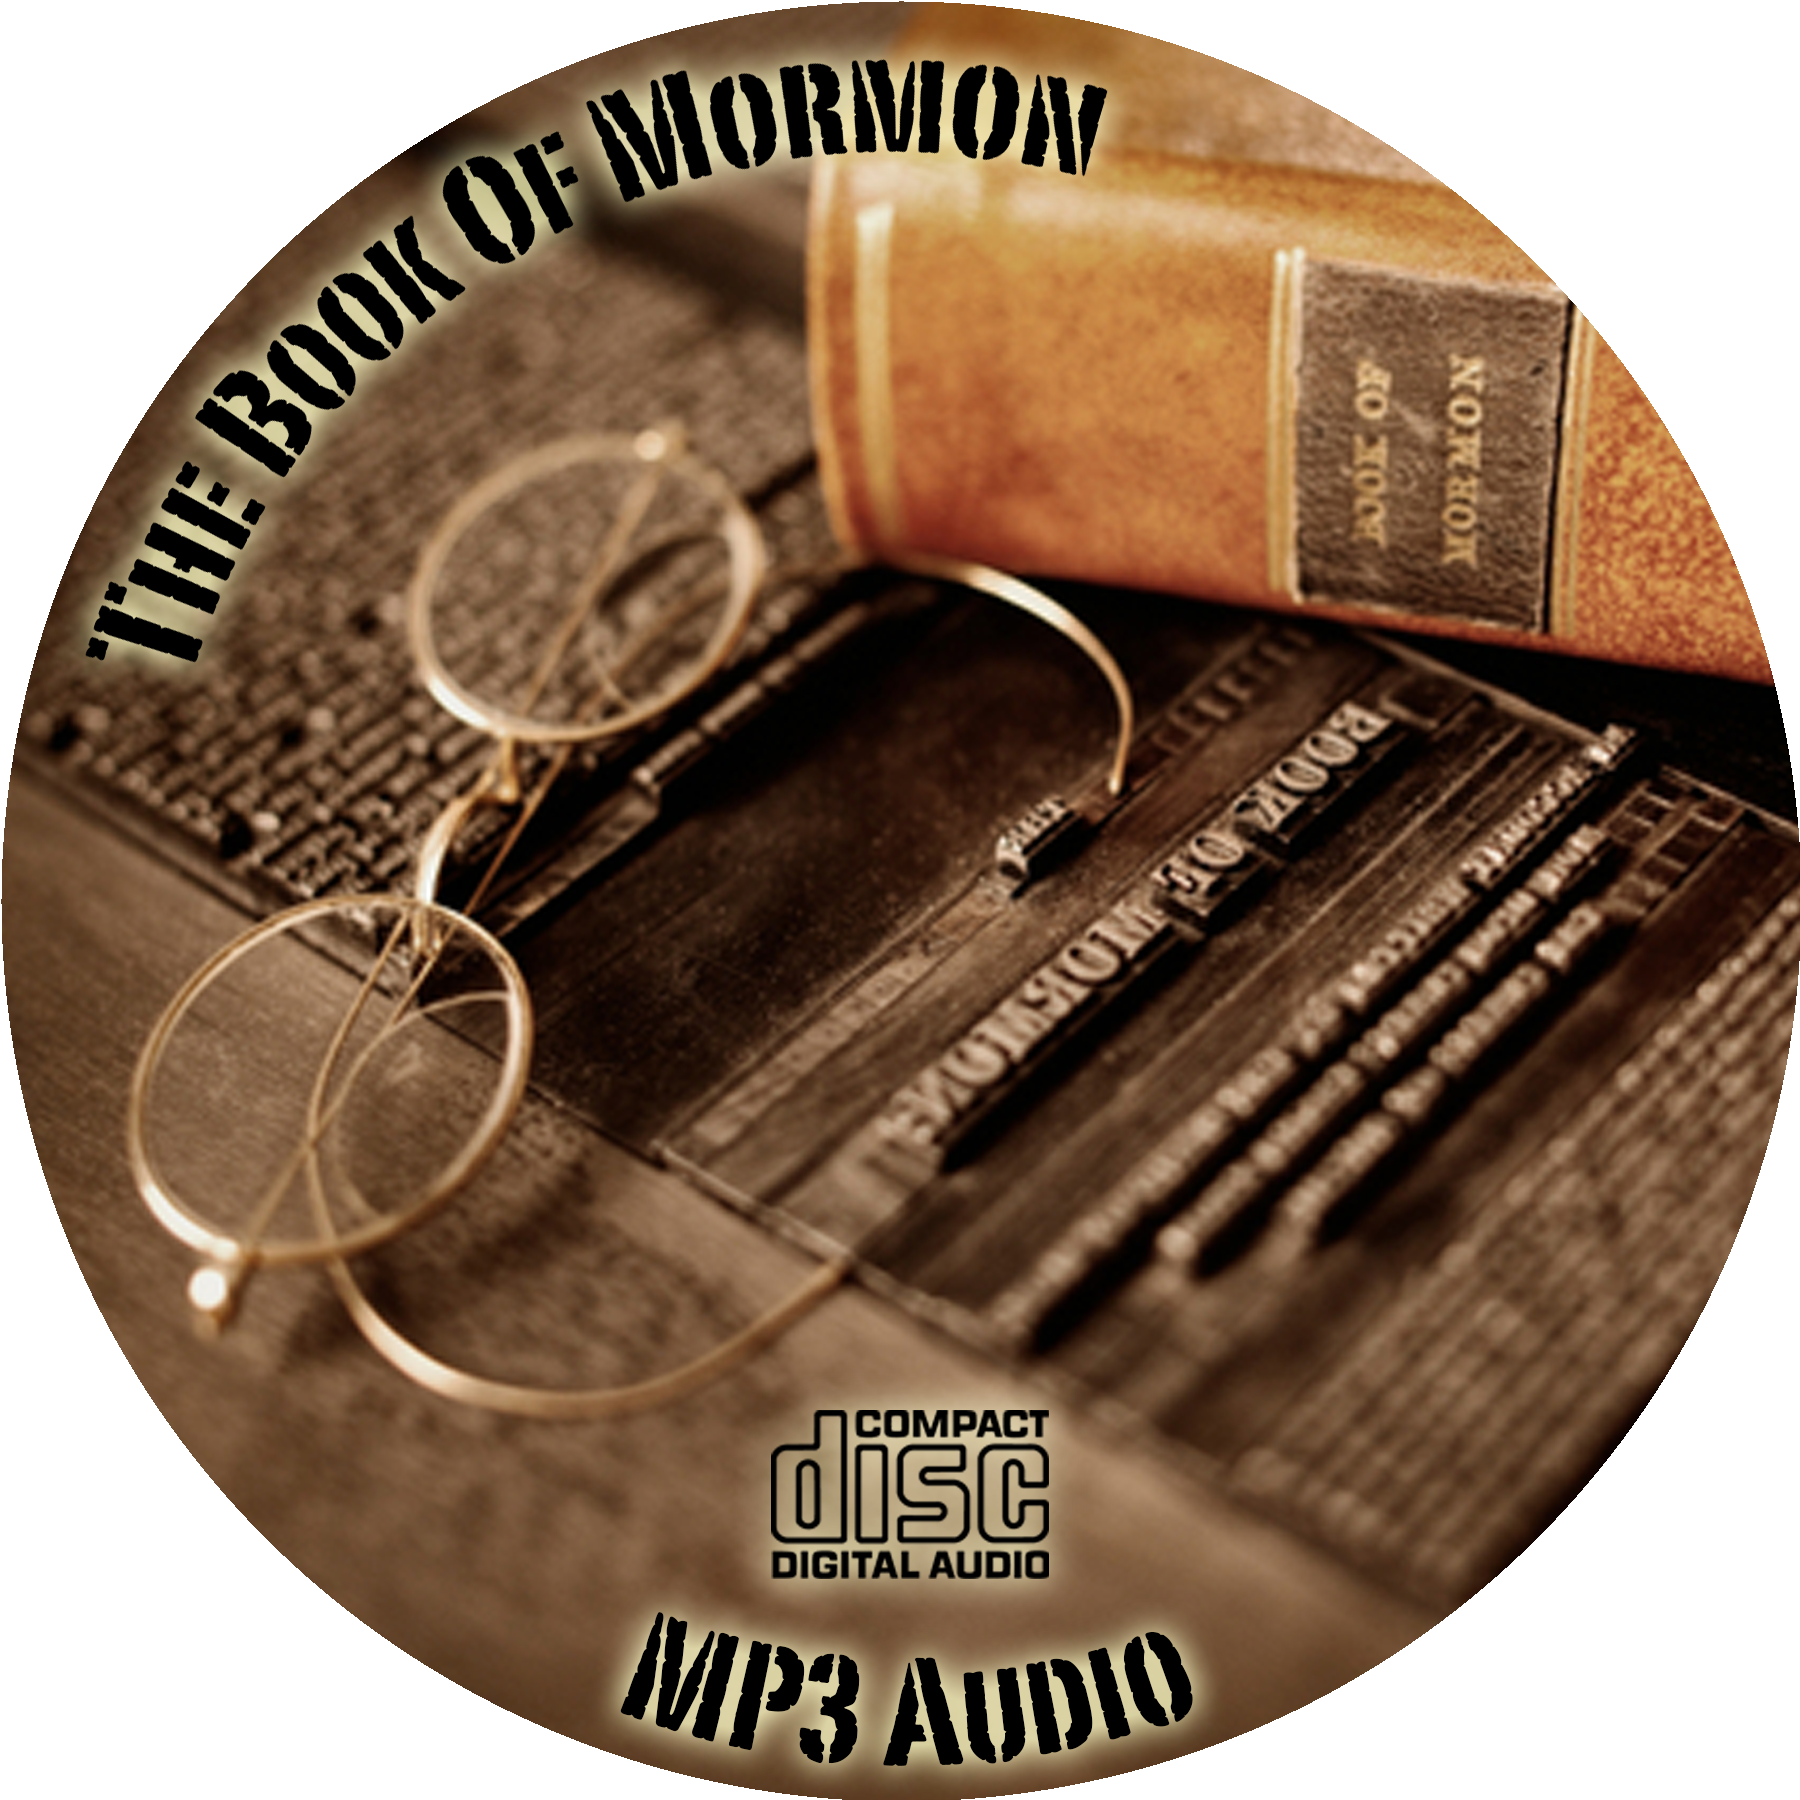 Book Of Mormon Audio